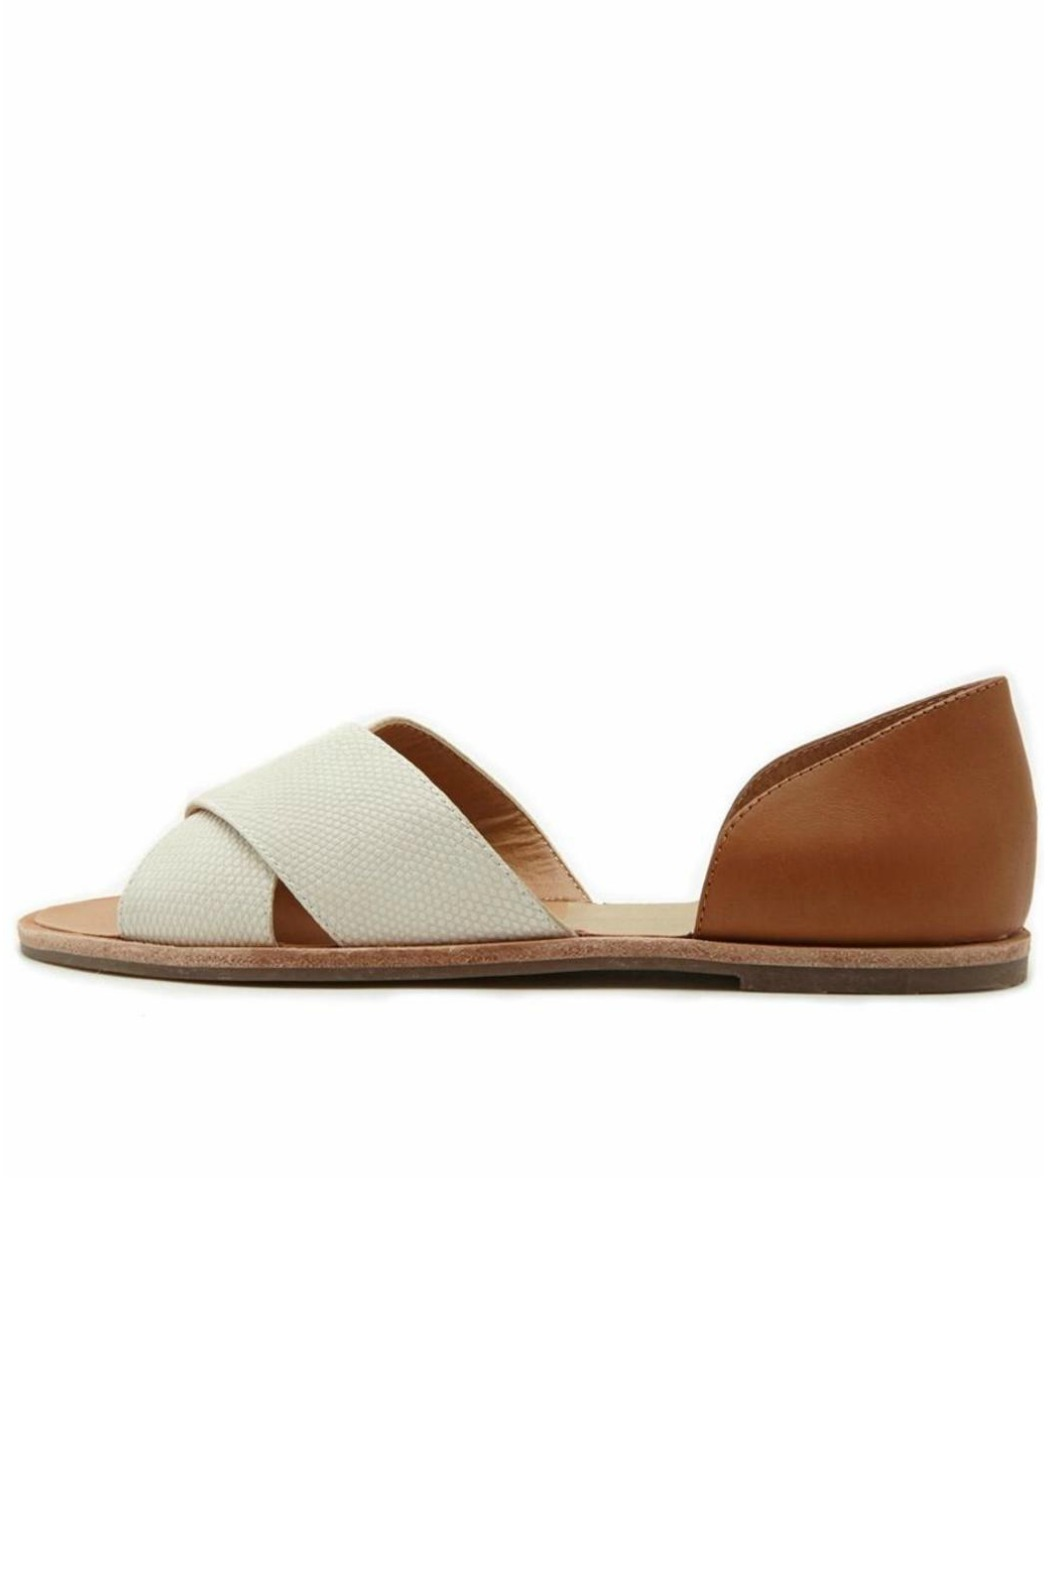 Dolce Vita Cross Peep-Toe Flat - Front Cropped Image